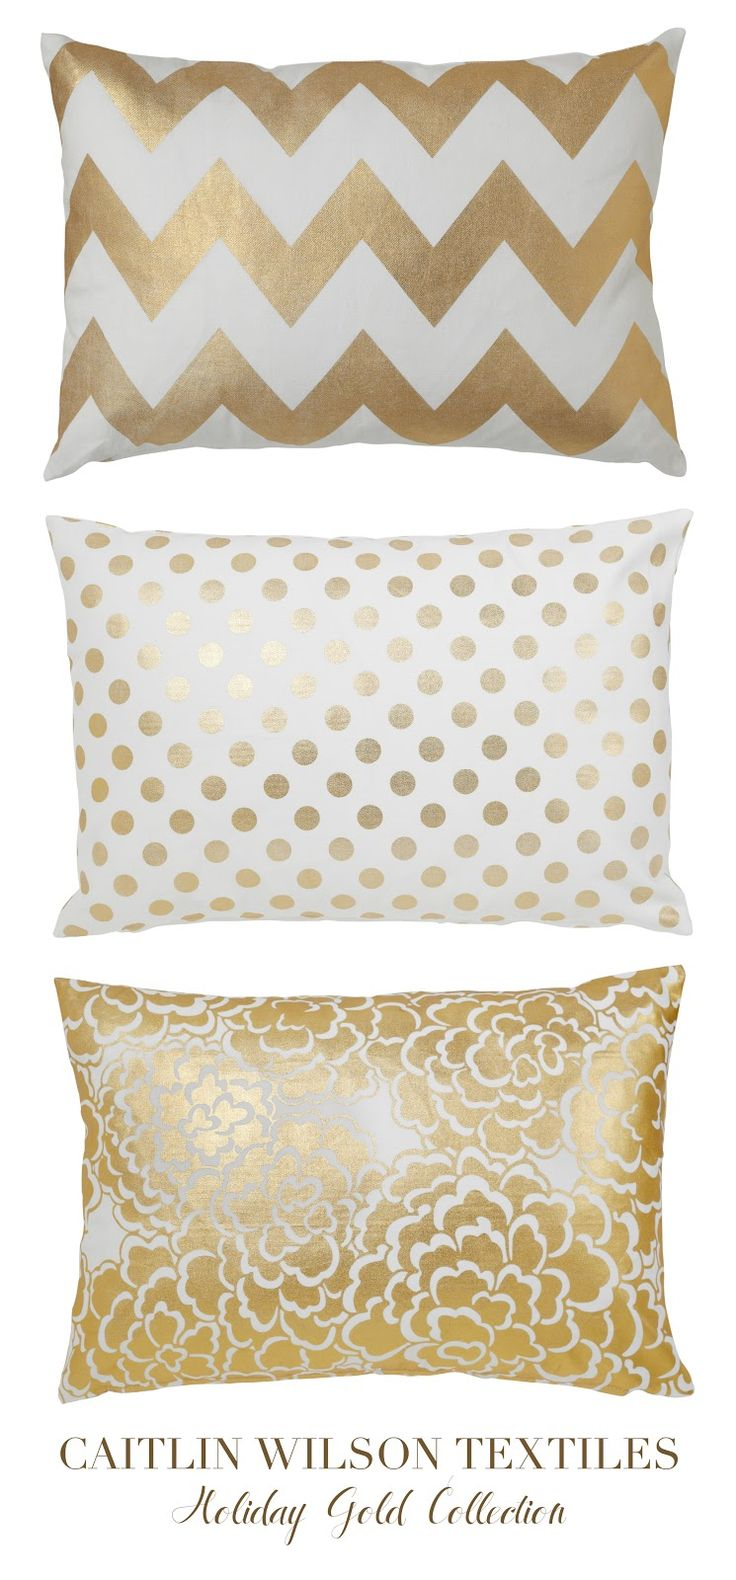 Grey Throw Pillows | Macys Throw Pillows | Gold Throw Pillows